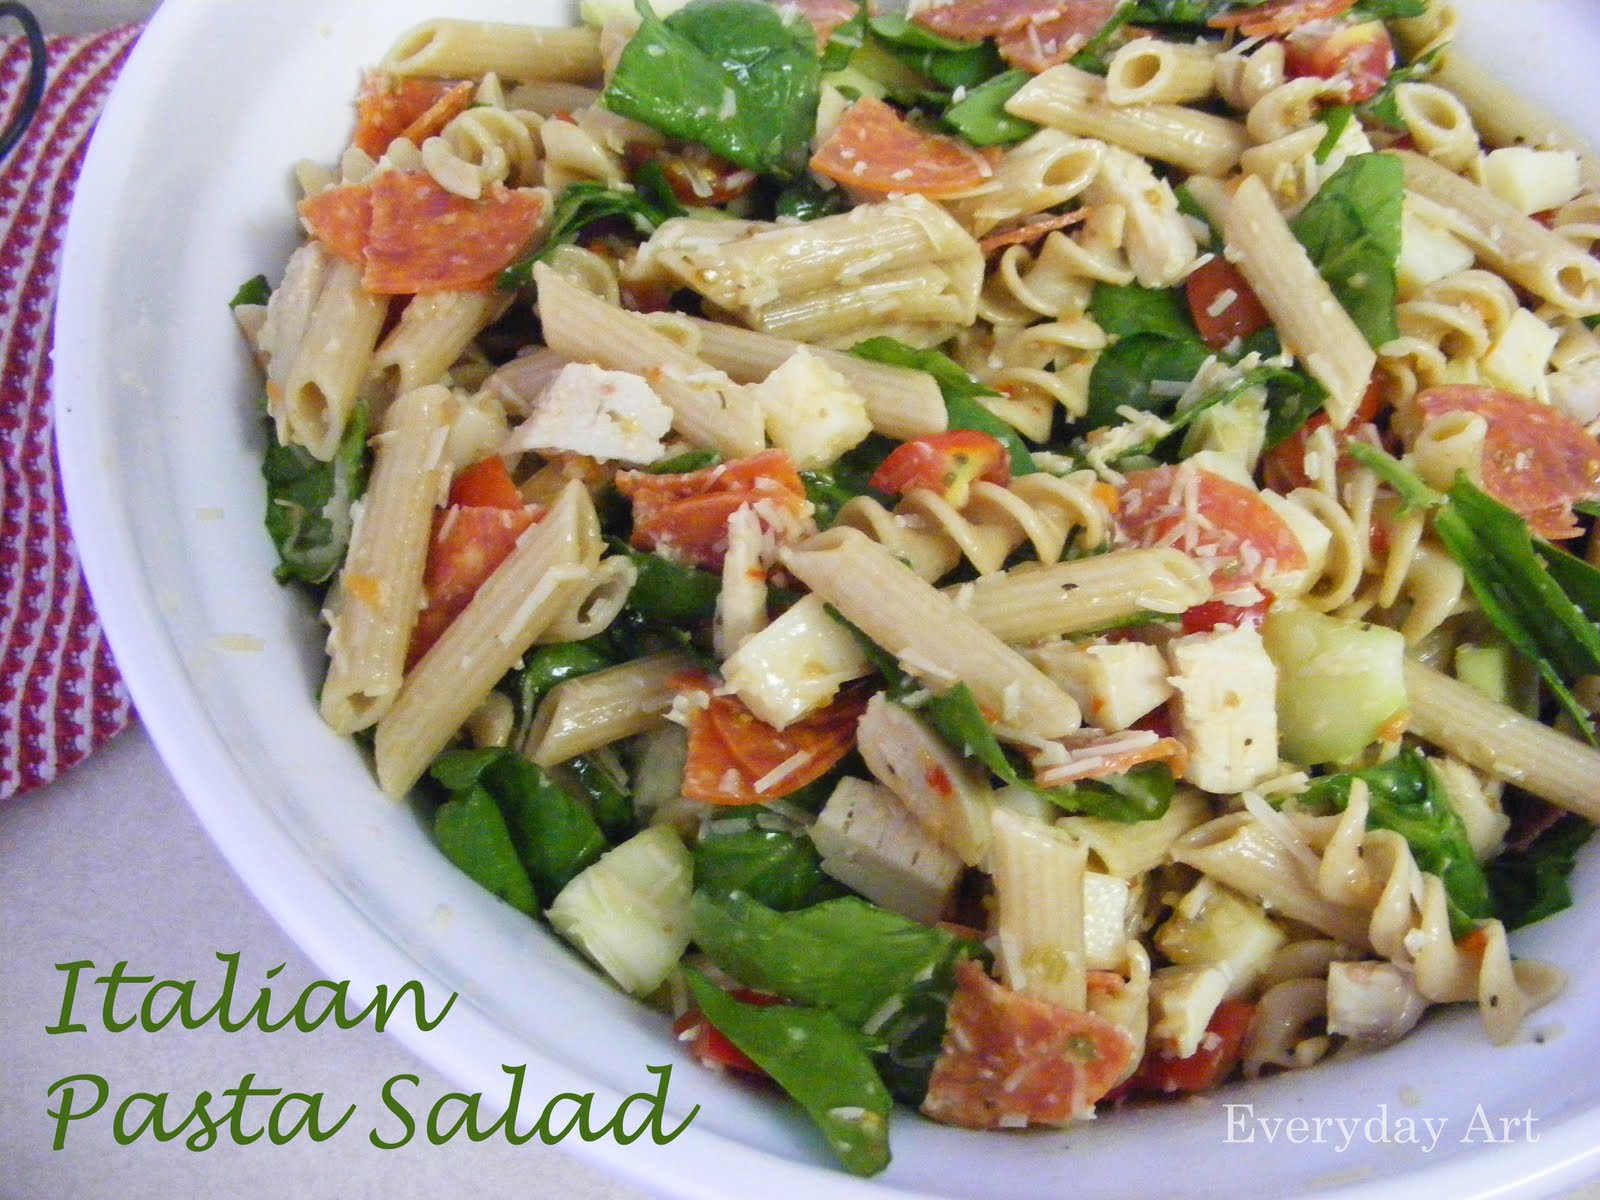 Everyday Art: Italian Pasta Salad